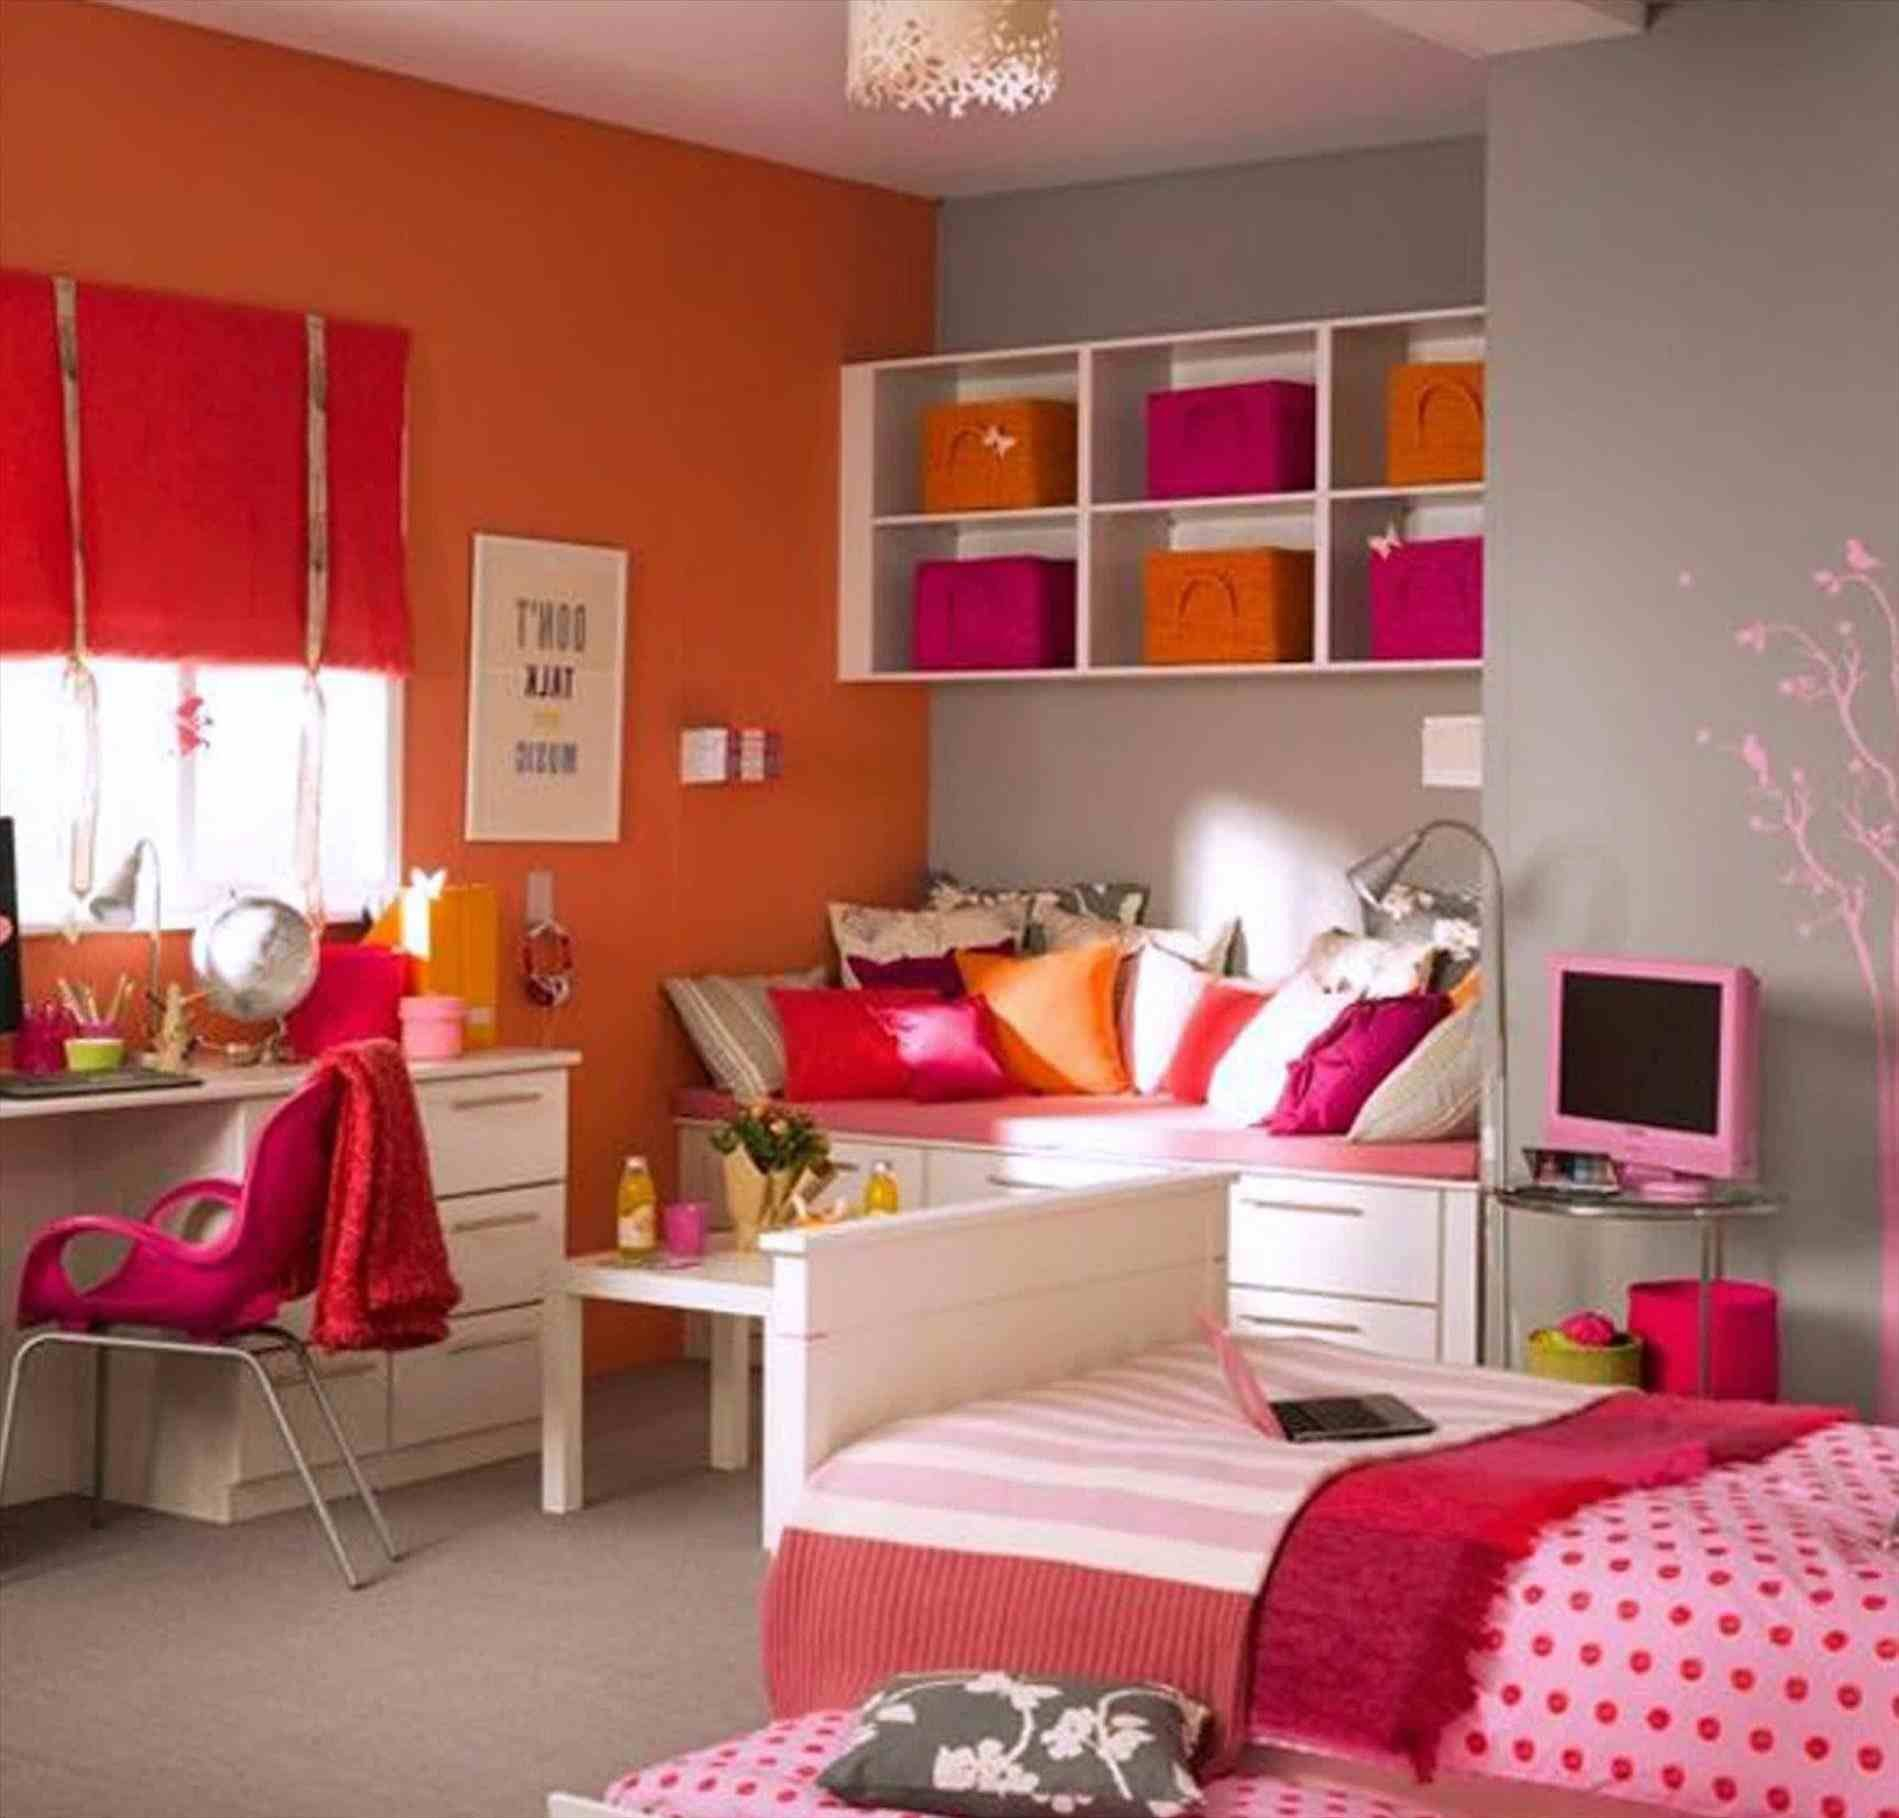 Cute girls bedroom ideas for small rooms 02